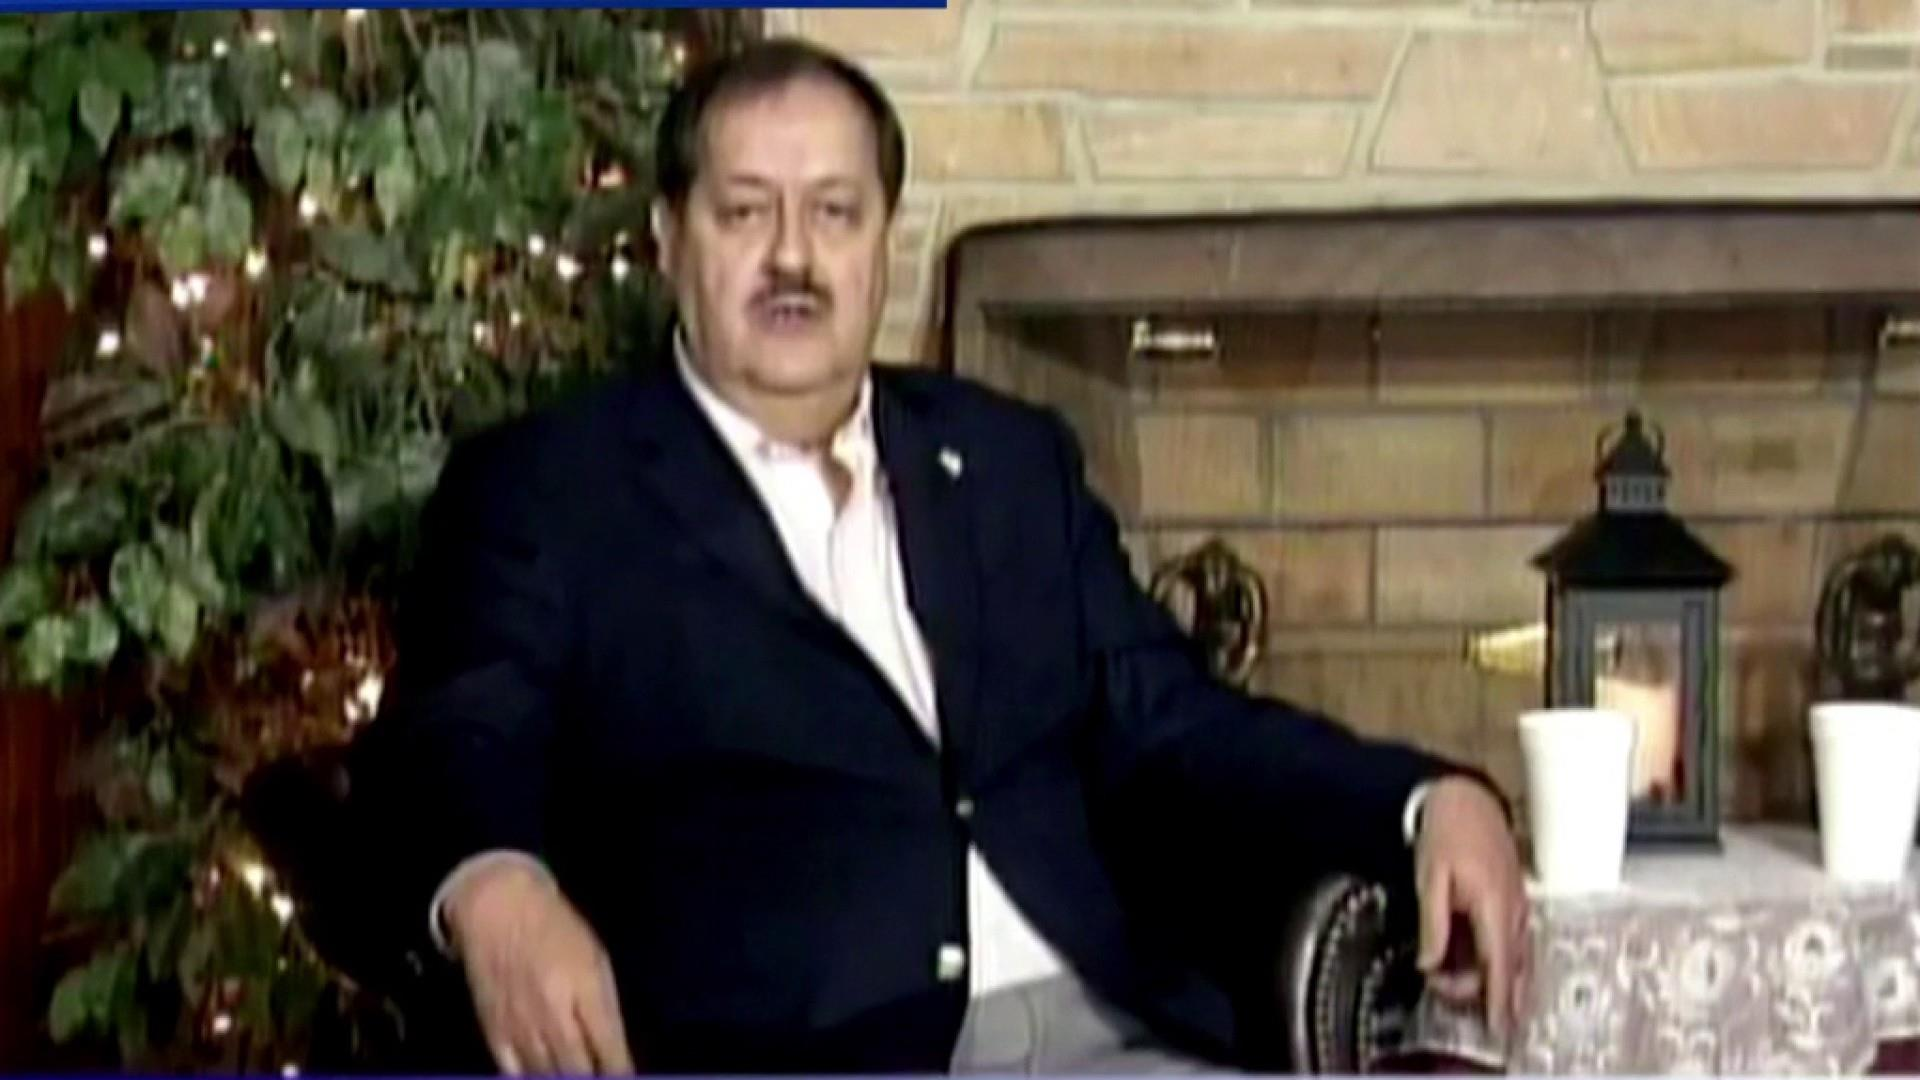 WV Senate candidate Blankenship surging before primary